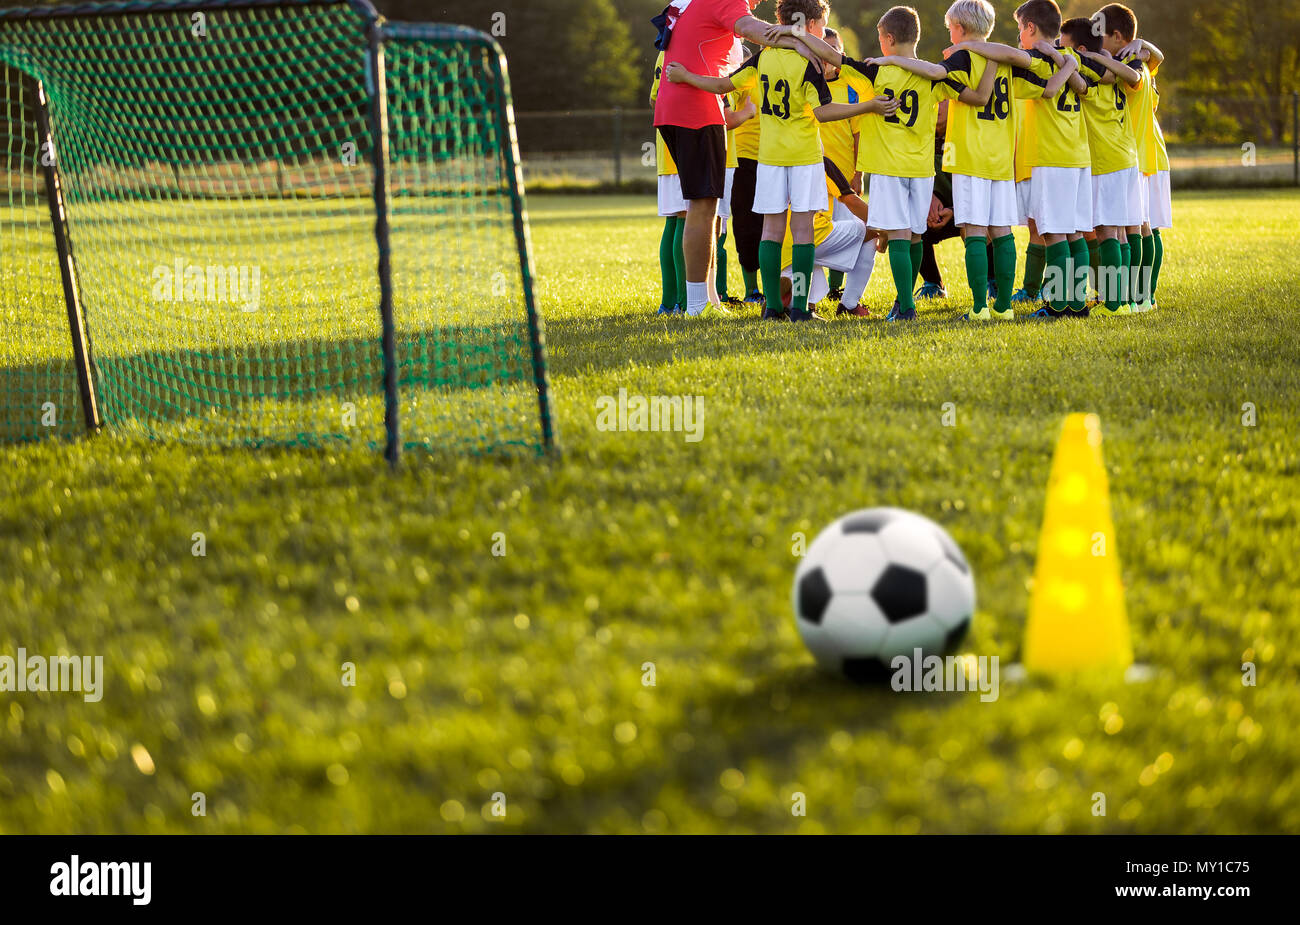 Soccer football training for young boys. Training session on the grass soccer field. Soccer ball and pylon cone and soccer goal in the foreground. You - Stock Image